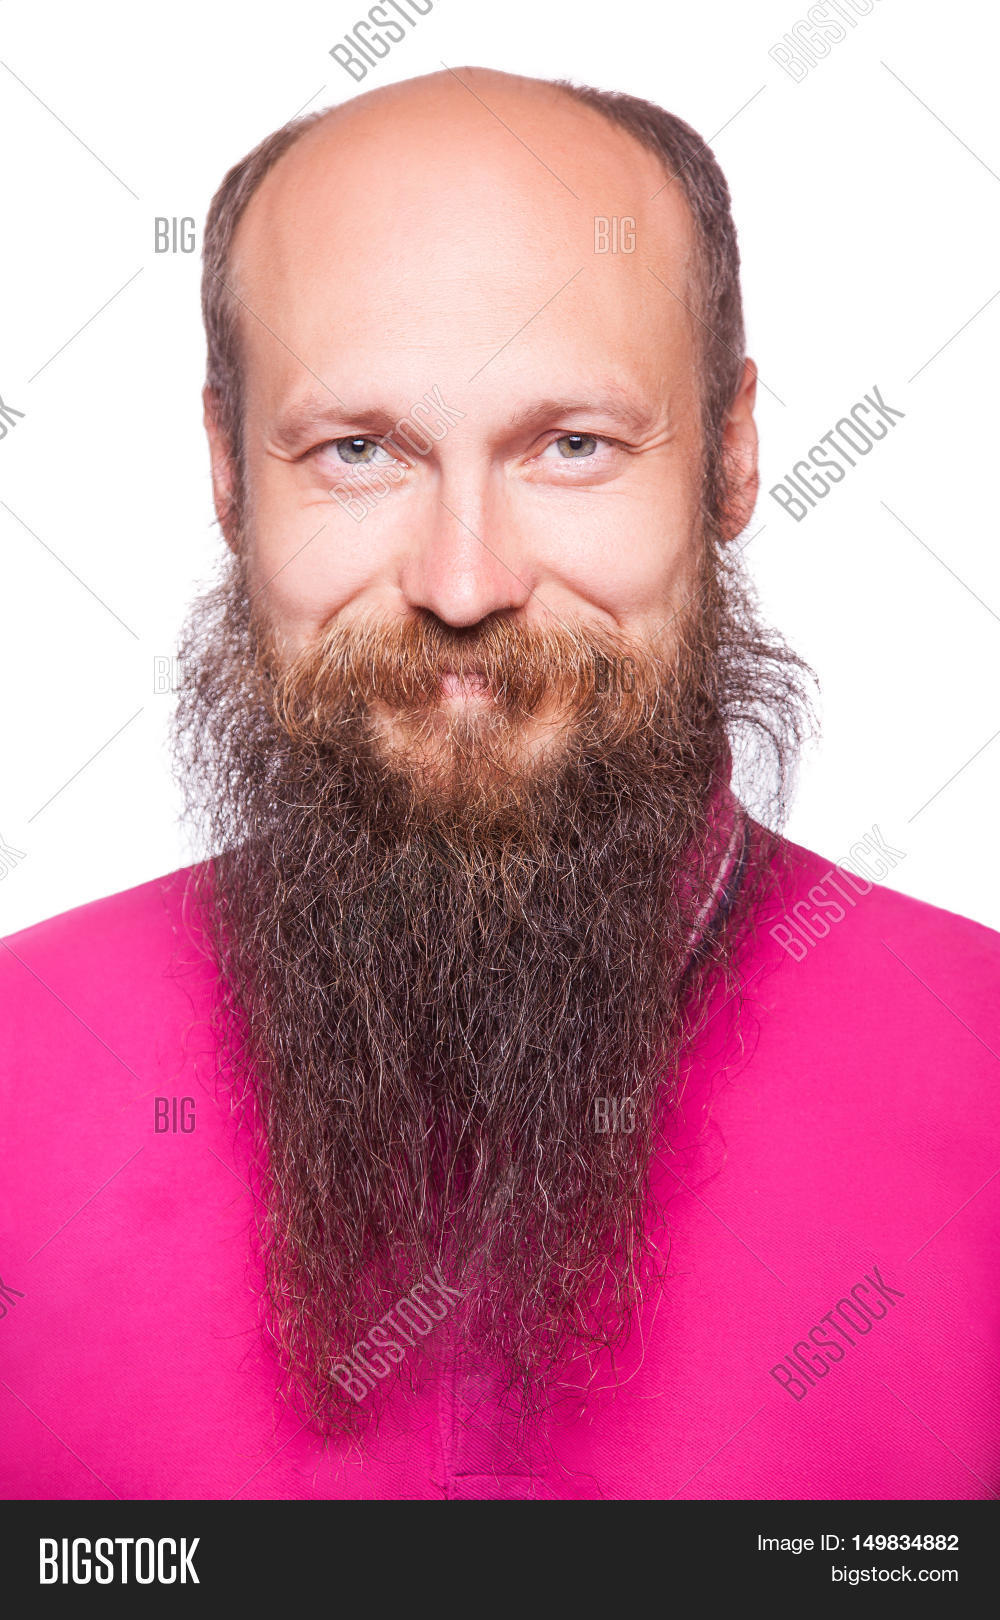 closeup,beauty,lucky,cool,shirt,successful,purple,white,camera,pink,smile,bearded,indoors,confidence,joyful,40s,vitality,red,mature,portrait,satisfied,cheerful,one,attitude,beautiful,joy,model,emotion,content,happy,men,happiness,bald,brown,positive,lifestyles,domestic,glad,funny,attractive,looking,success,satisfaction,beard,aspirations,isolated,caucasian,face,adult,male